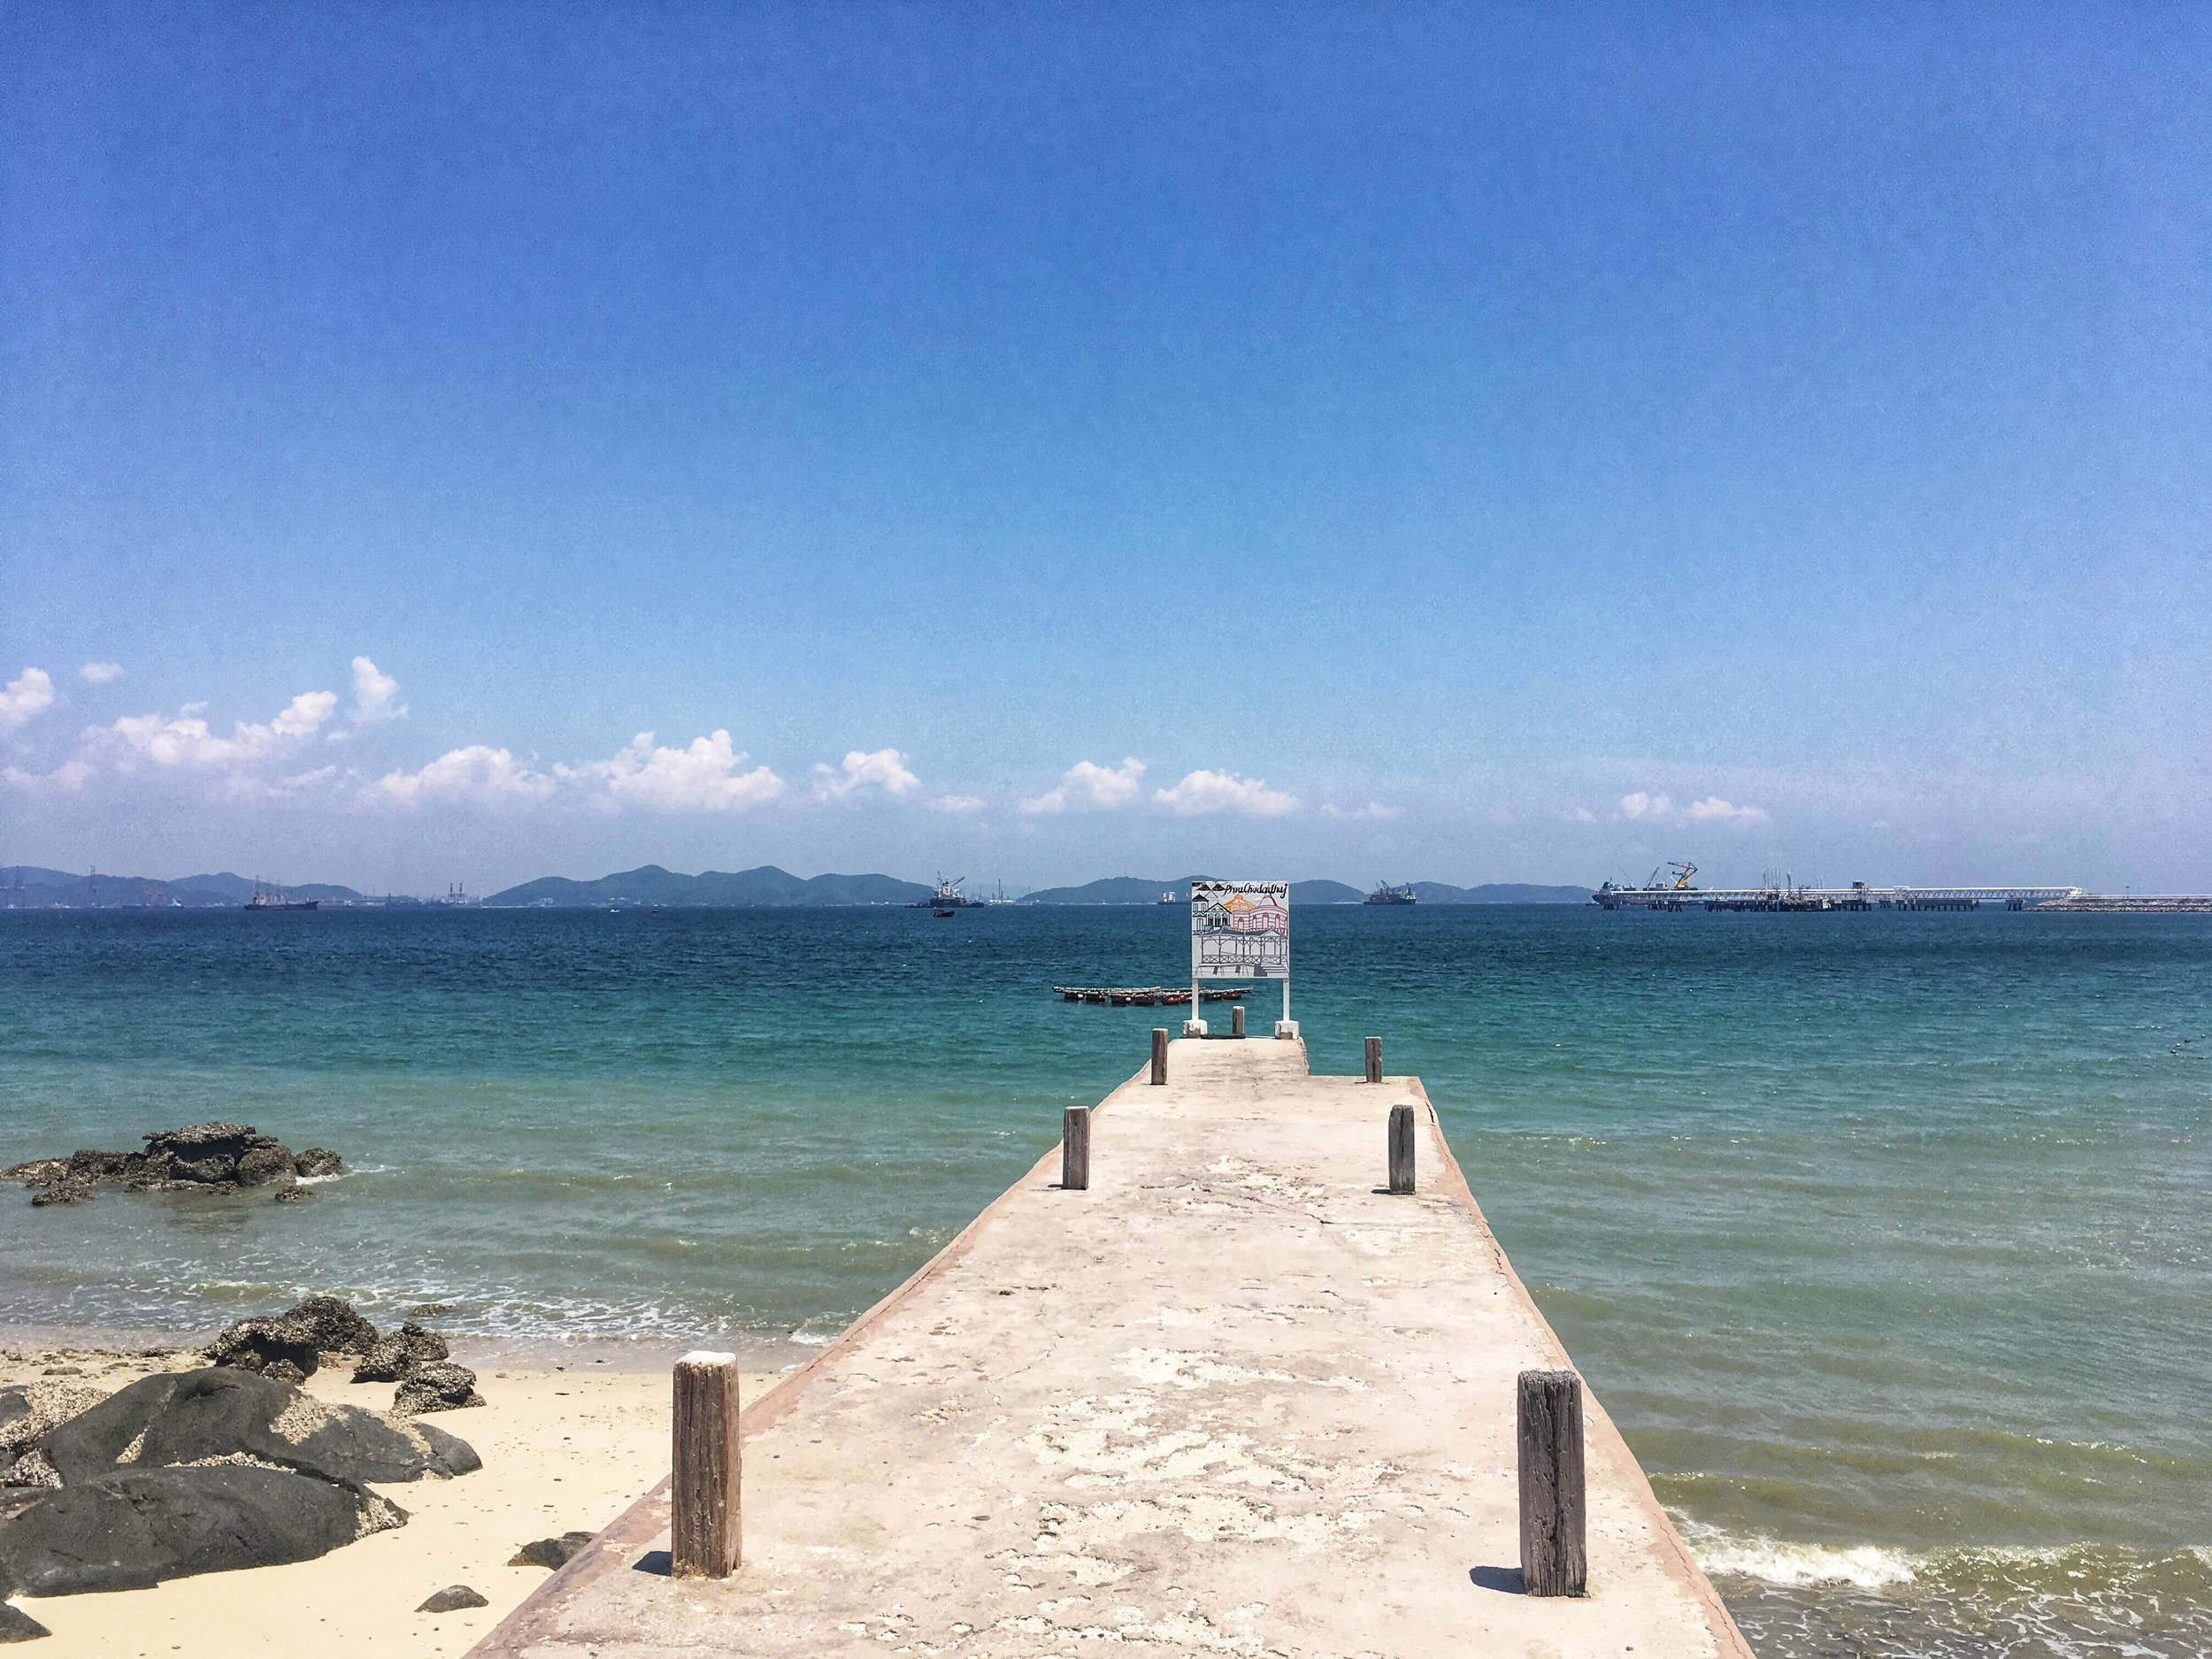 beautiful Koh Sichang in the Gulf of Thailand